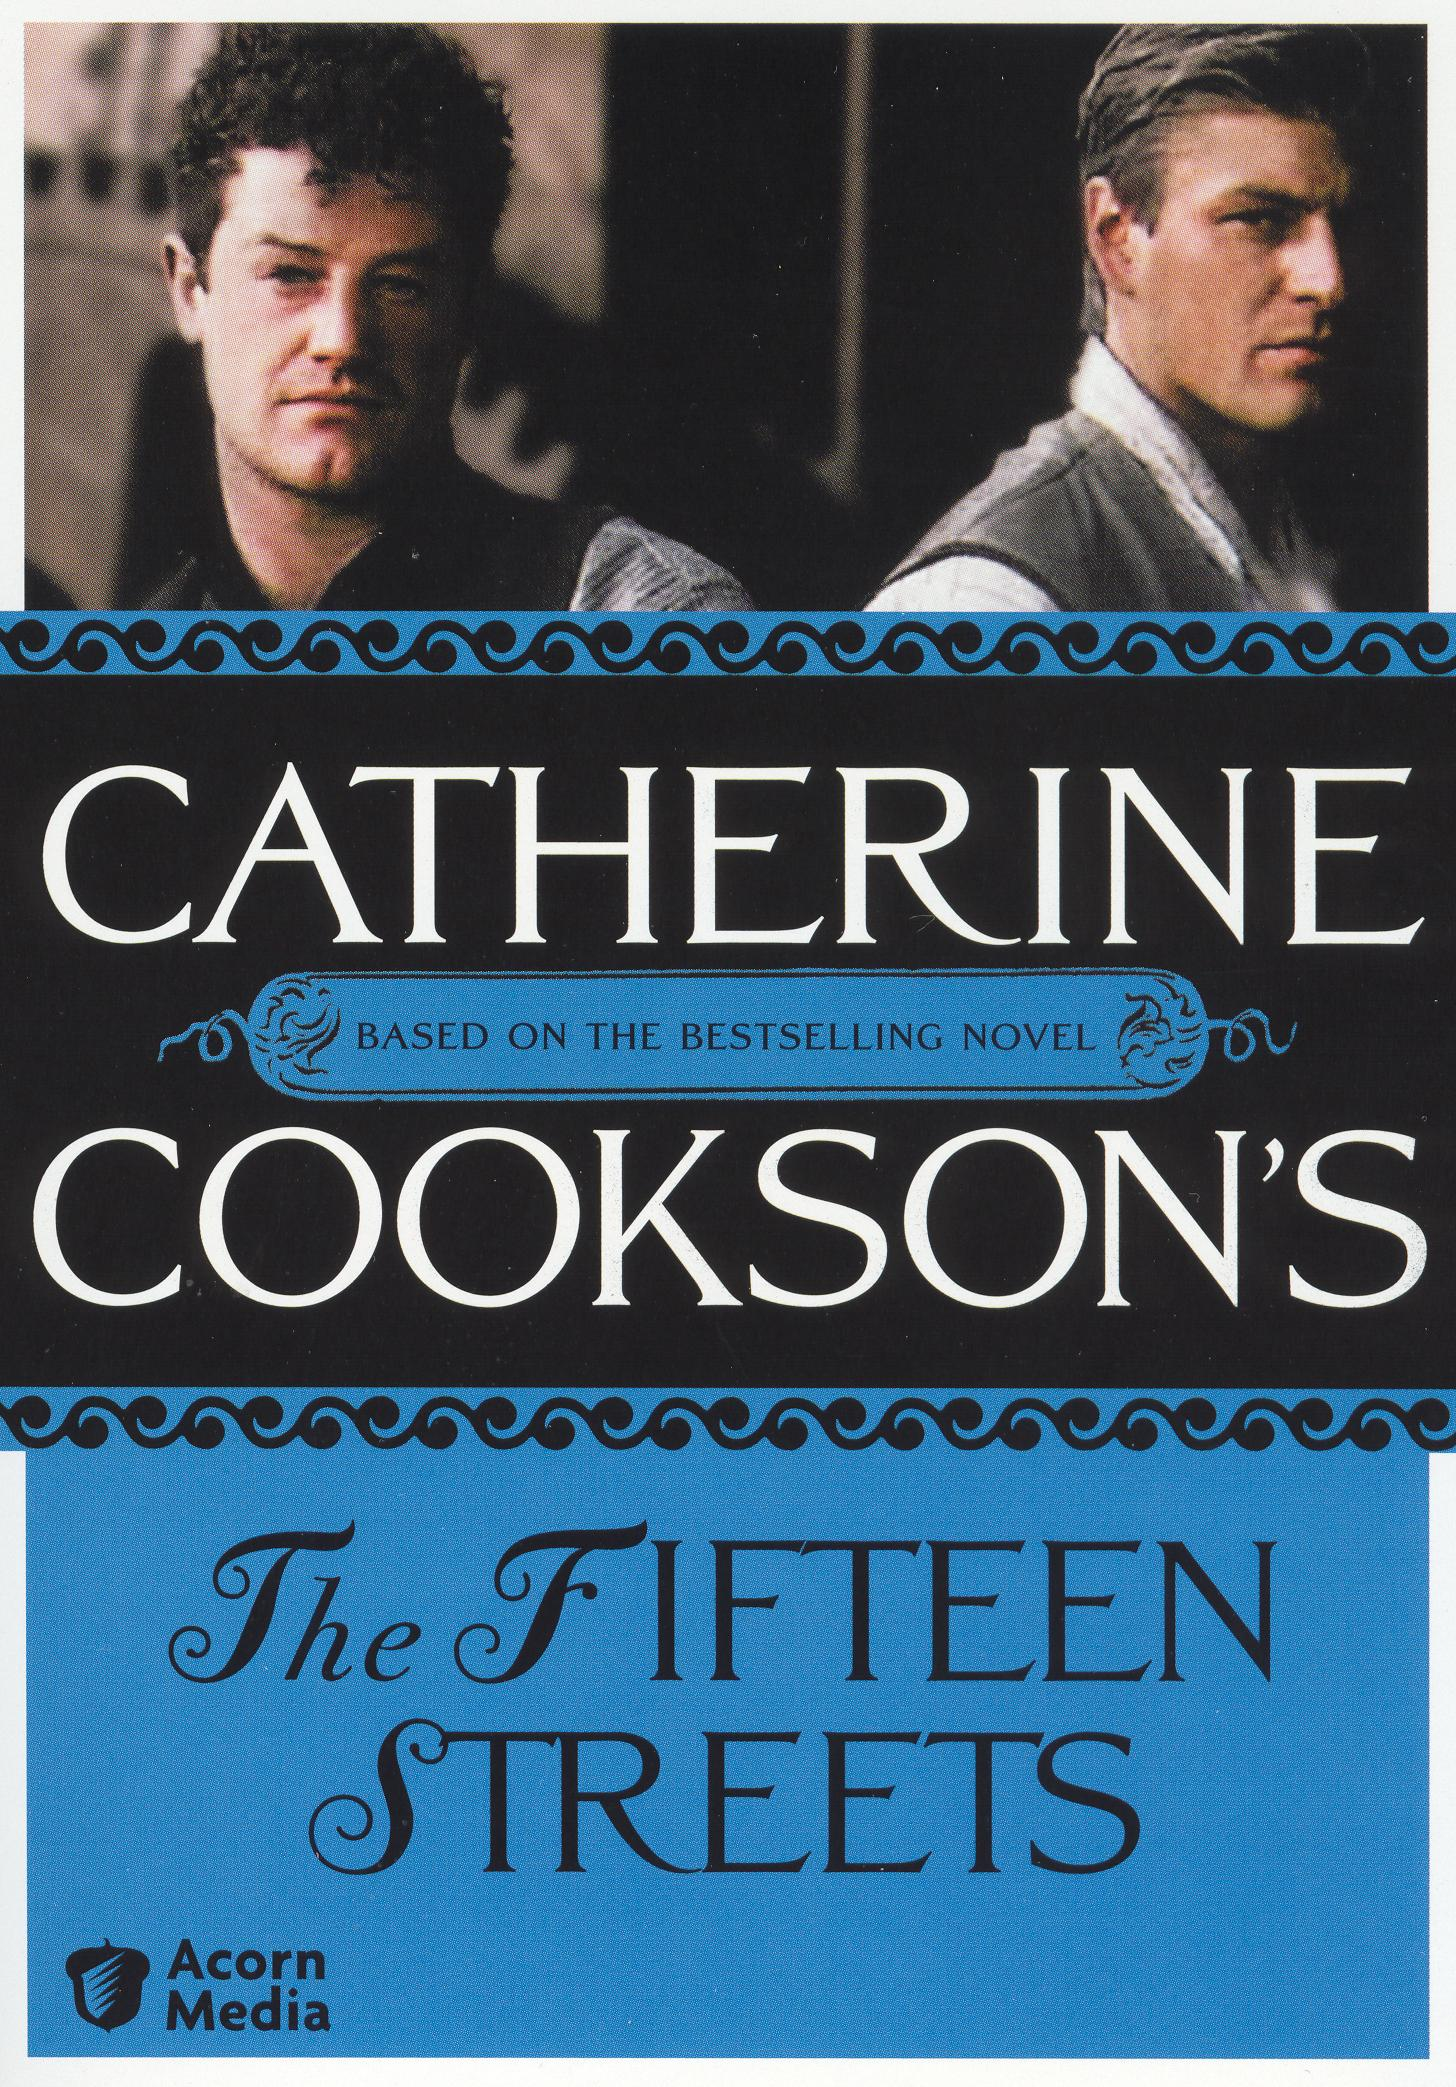 Catherine Cookson's The Fifteen Streets